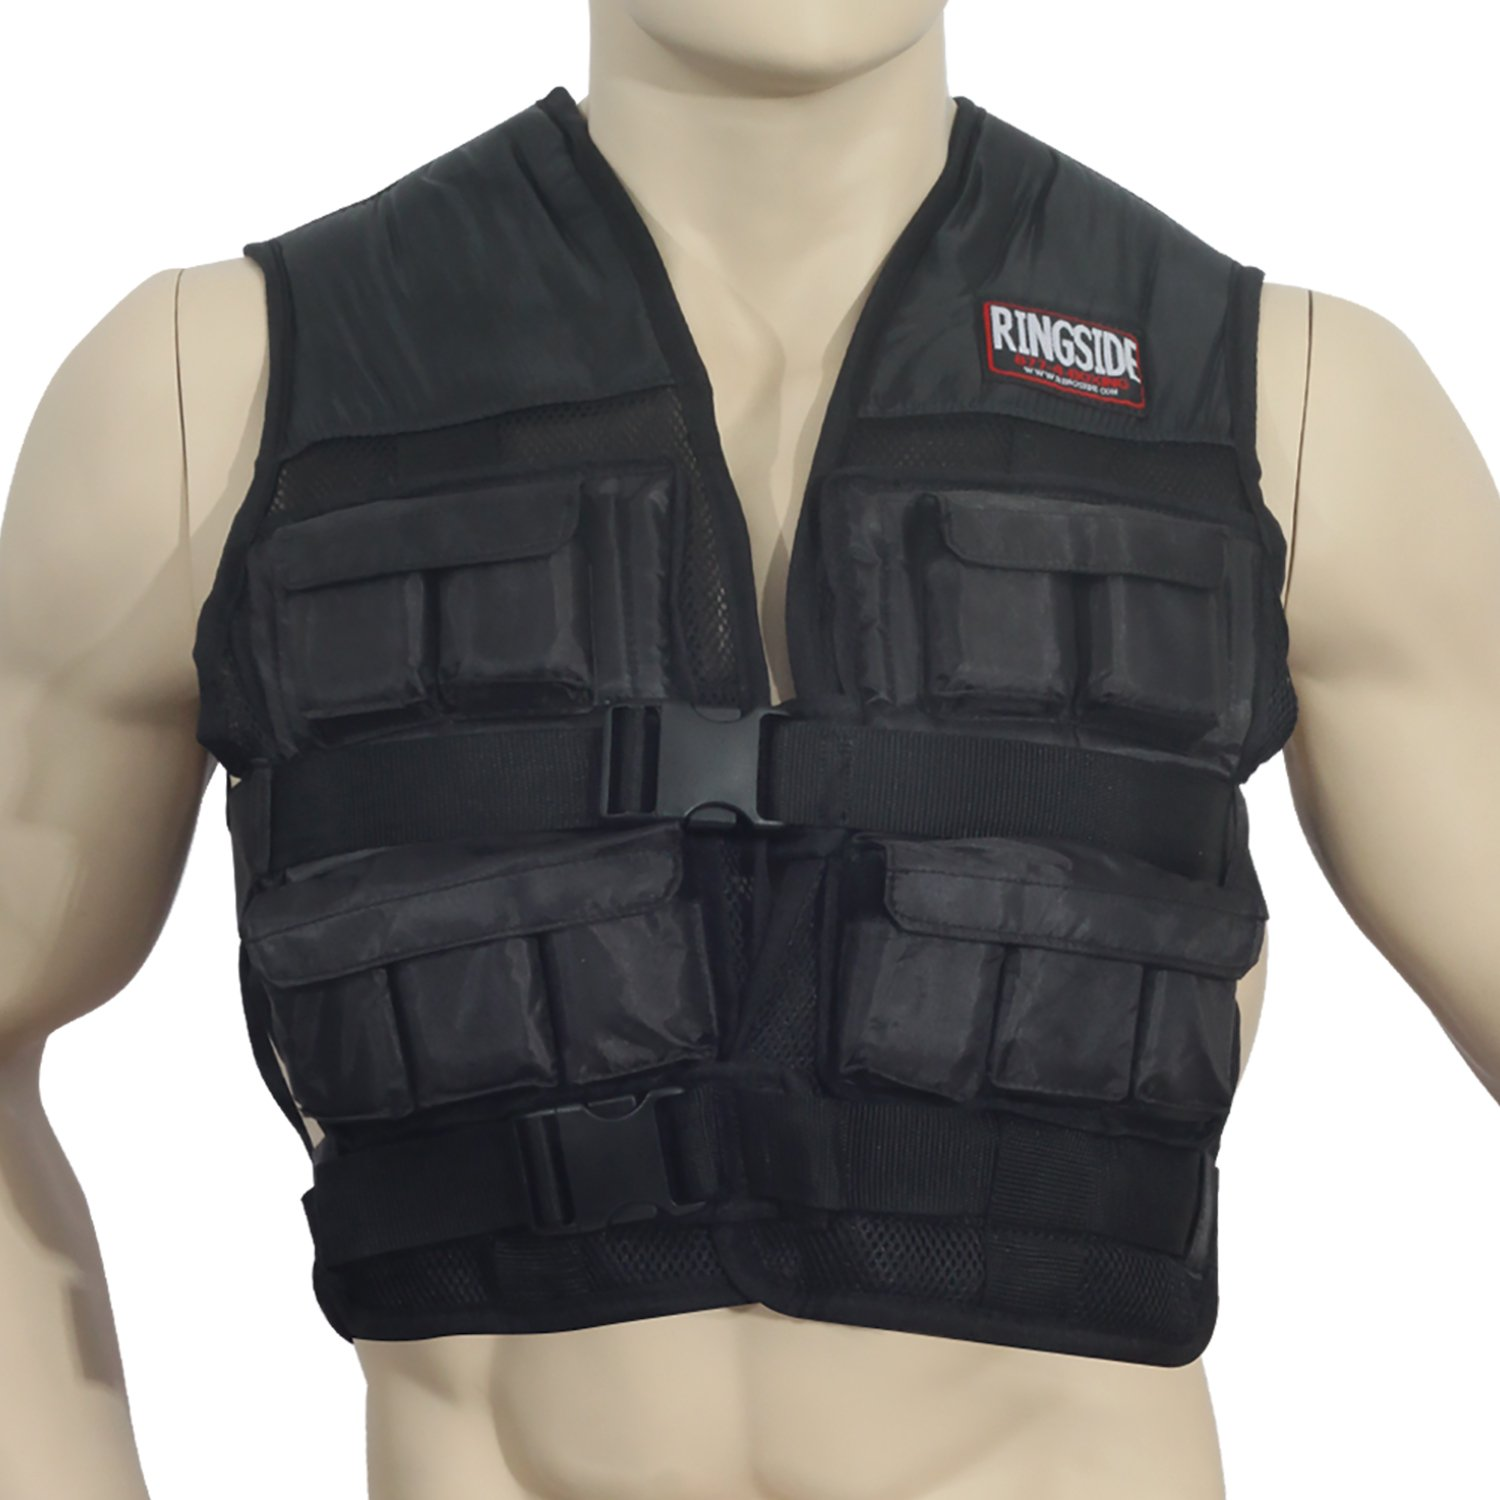 Ringside Weighted Vest WVEST -P